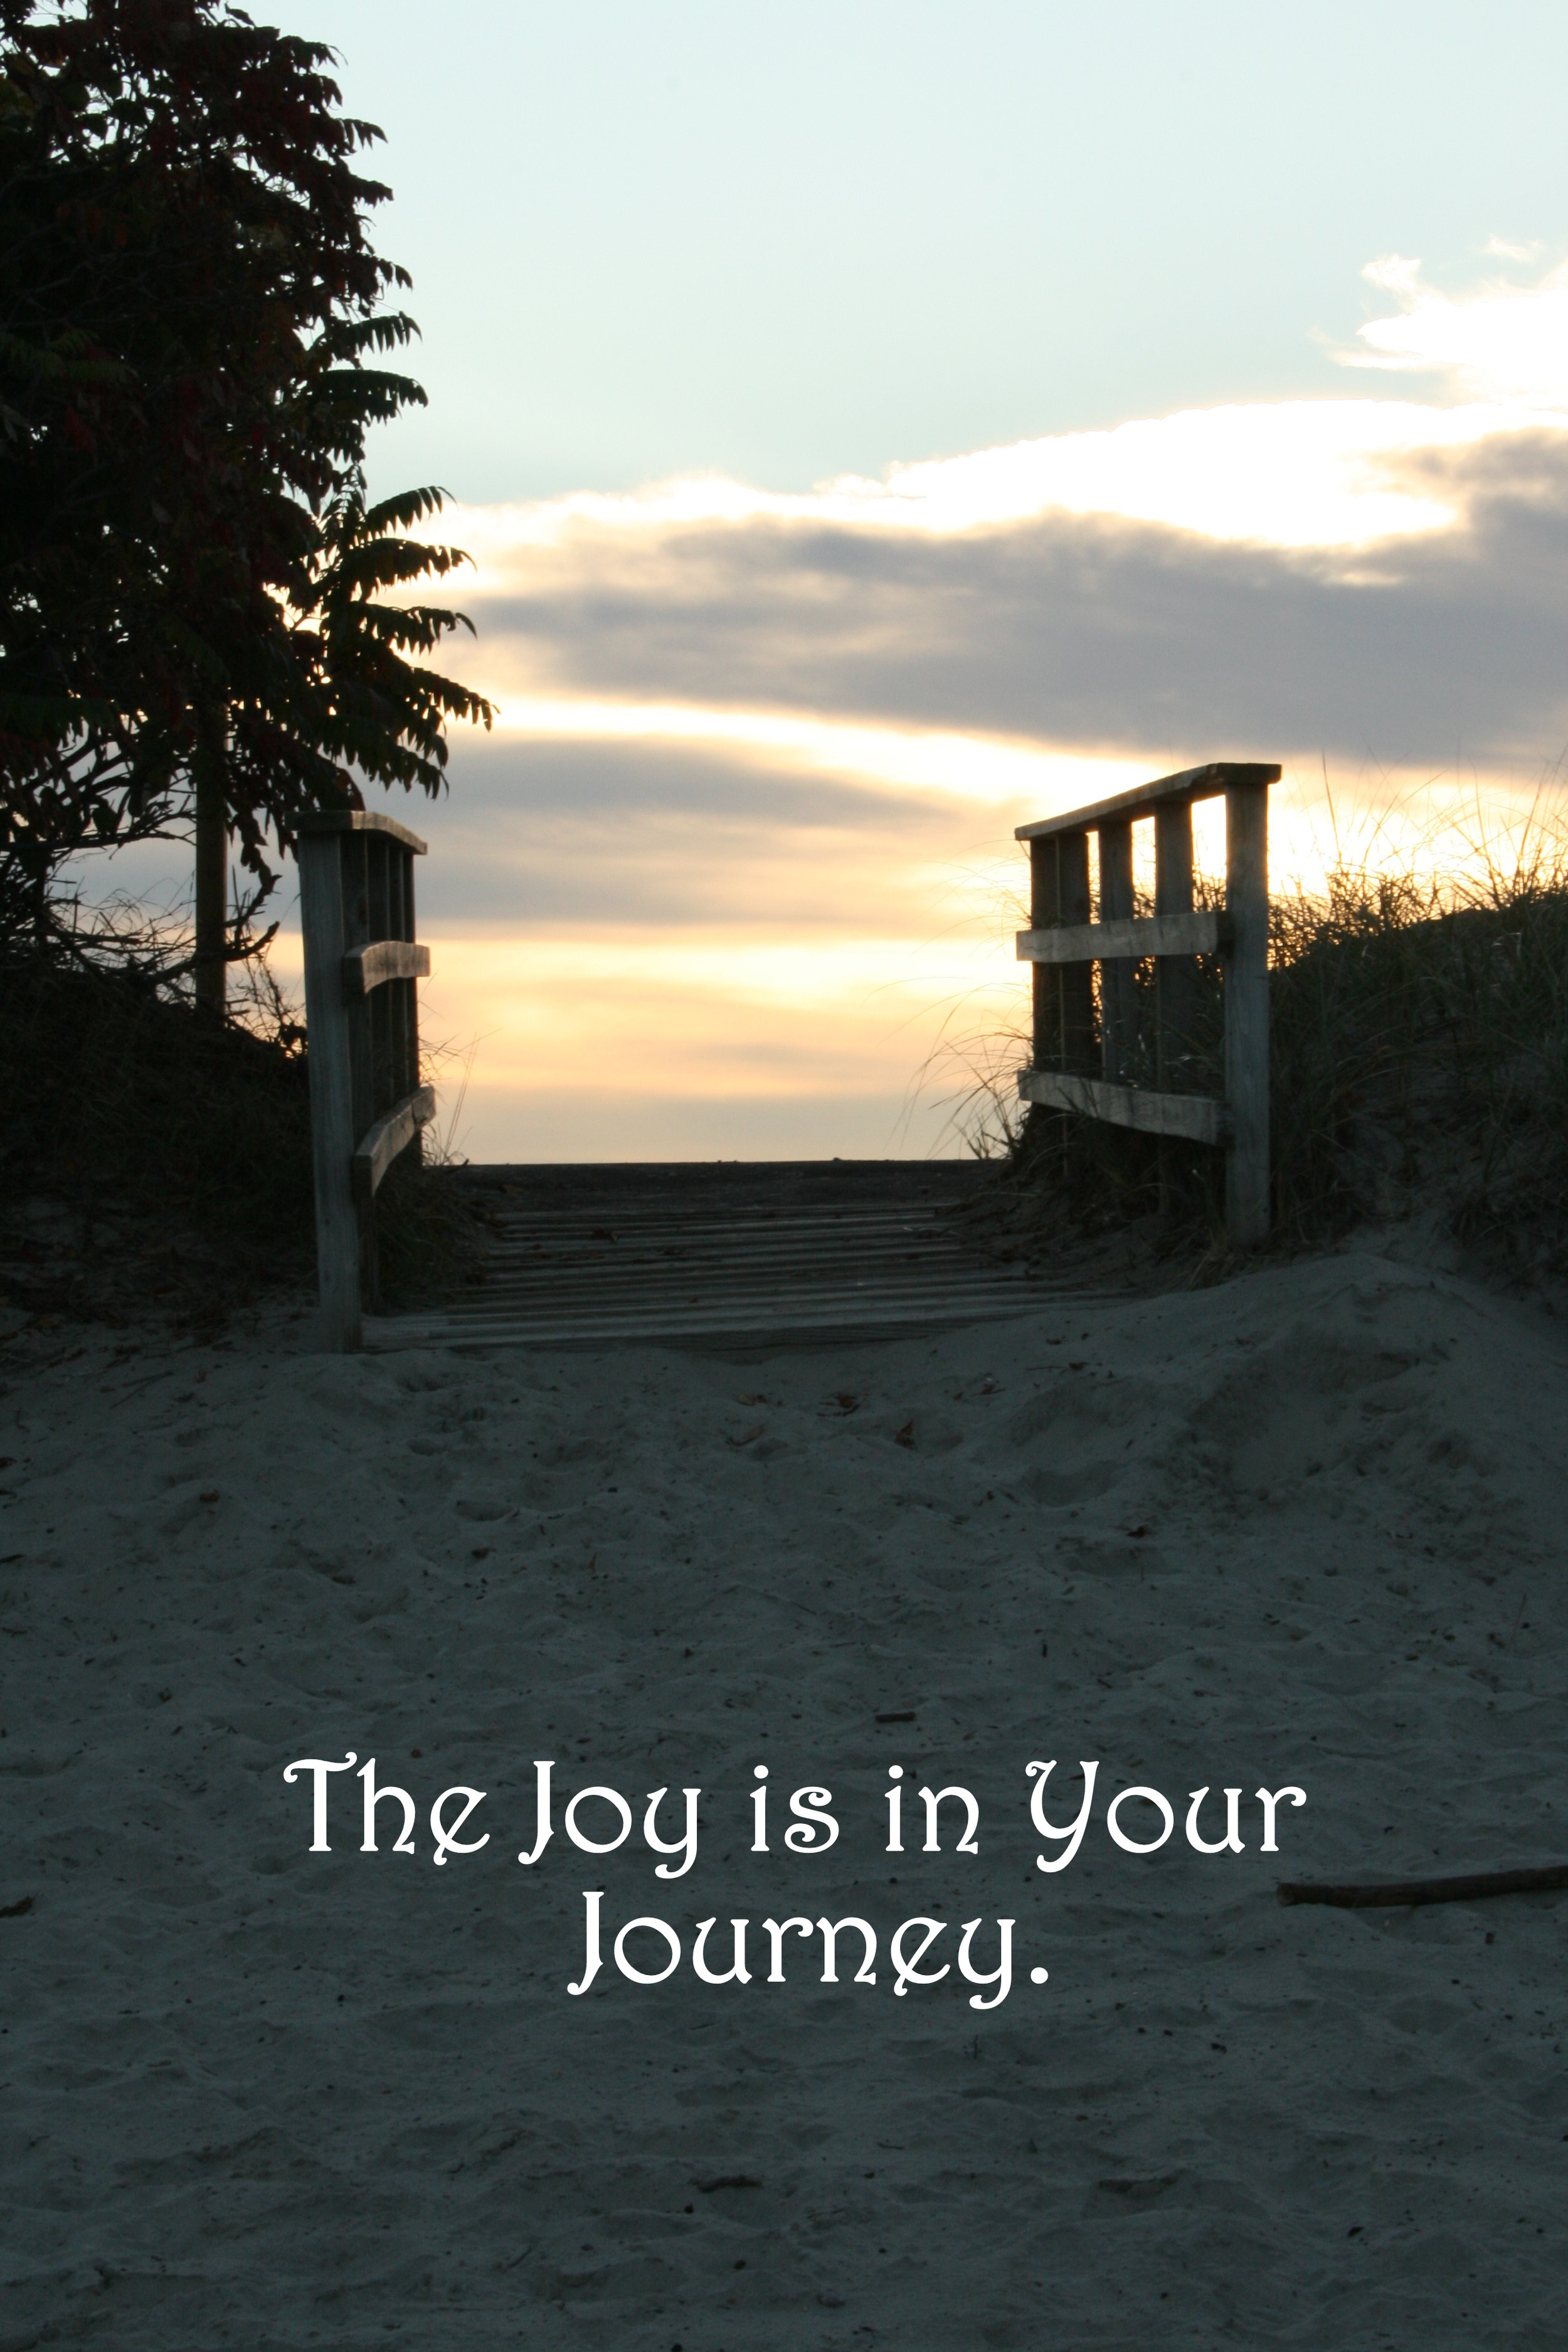 Sand path_The Joy is in Your journey.jpg